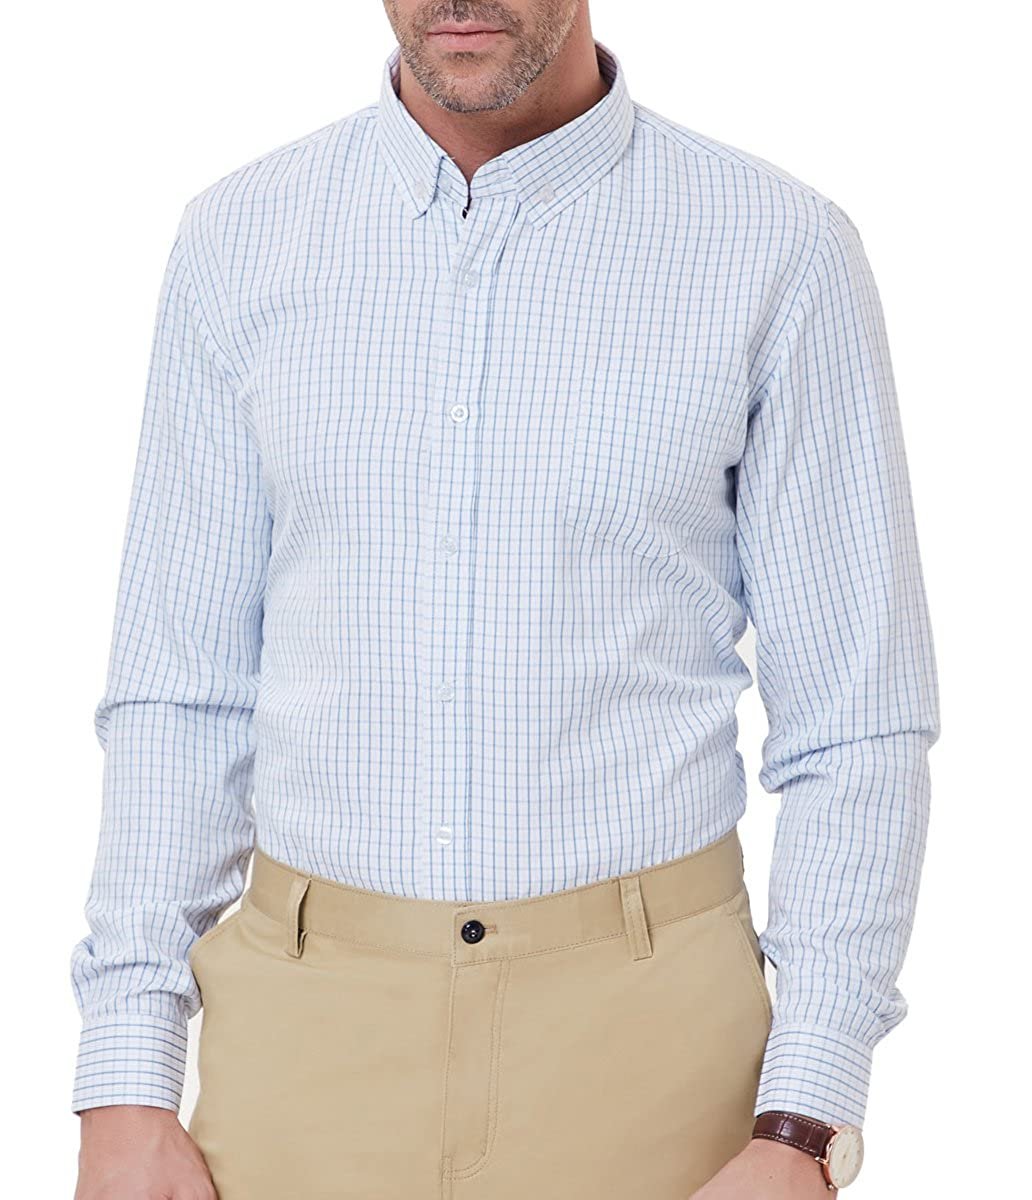 56f478bf This casual plaid shirt features check pattern, button-down collar, button  front closure, long sleeve, patch chest pocket. Popular gingham check style  with ...